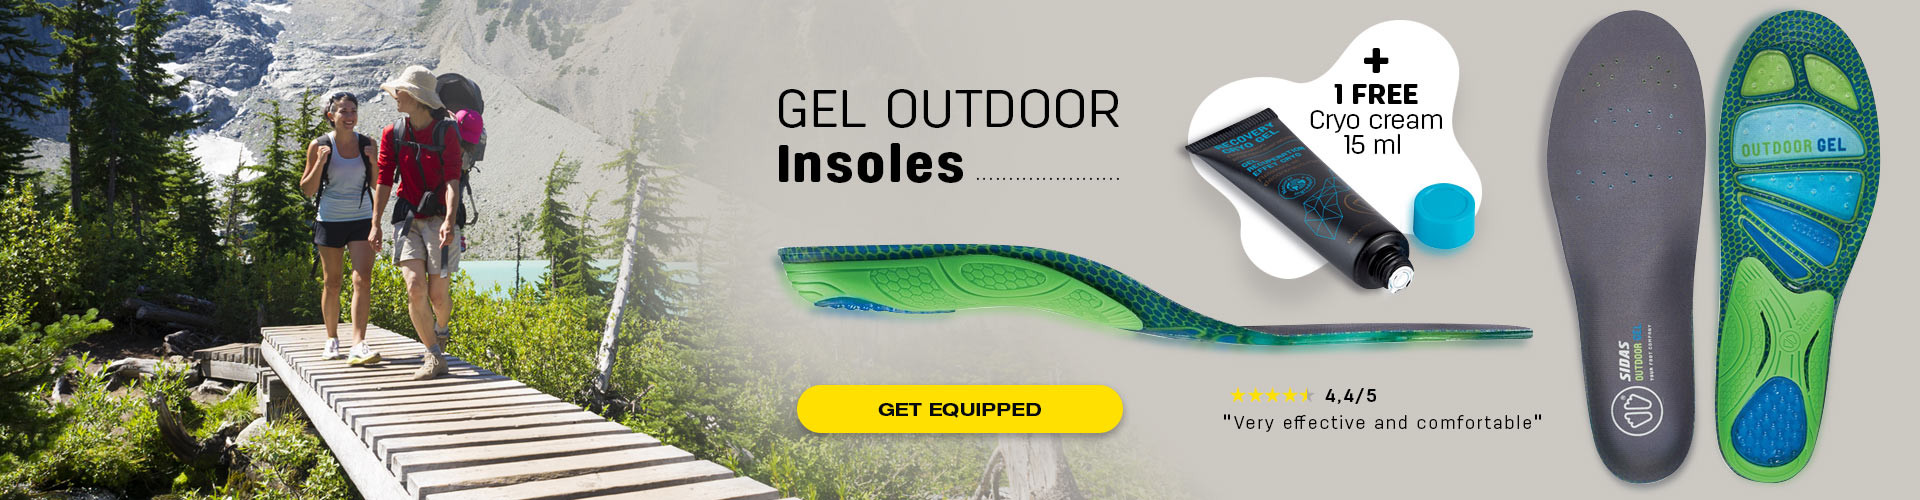 Gel insoles for hiking, and get your free gel cryo cream when you purchase one pair of insoles.